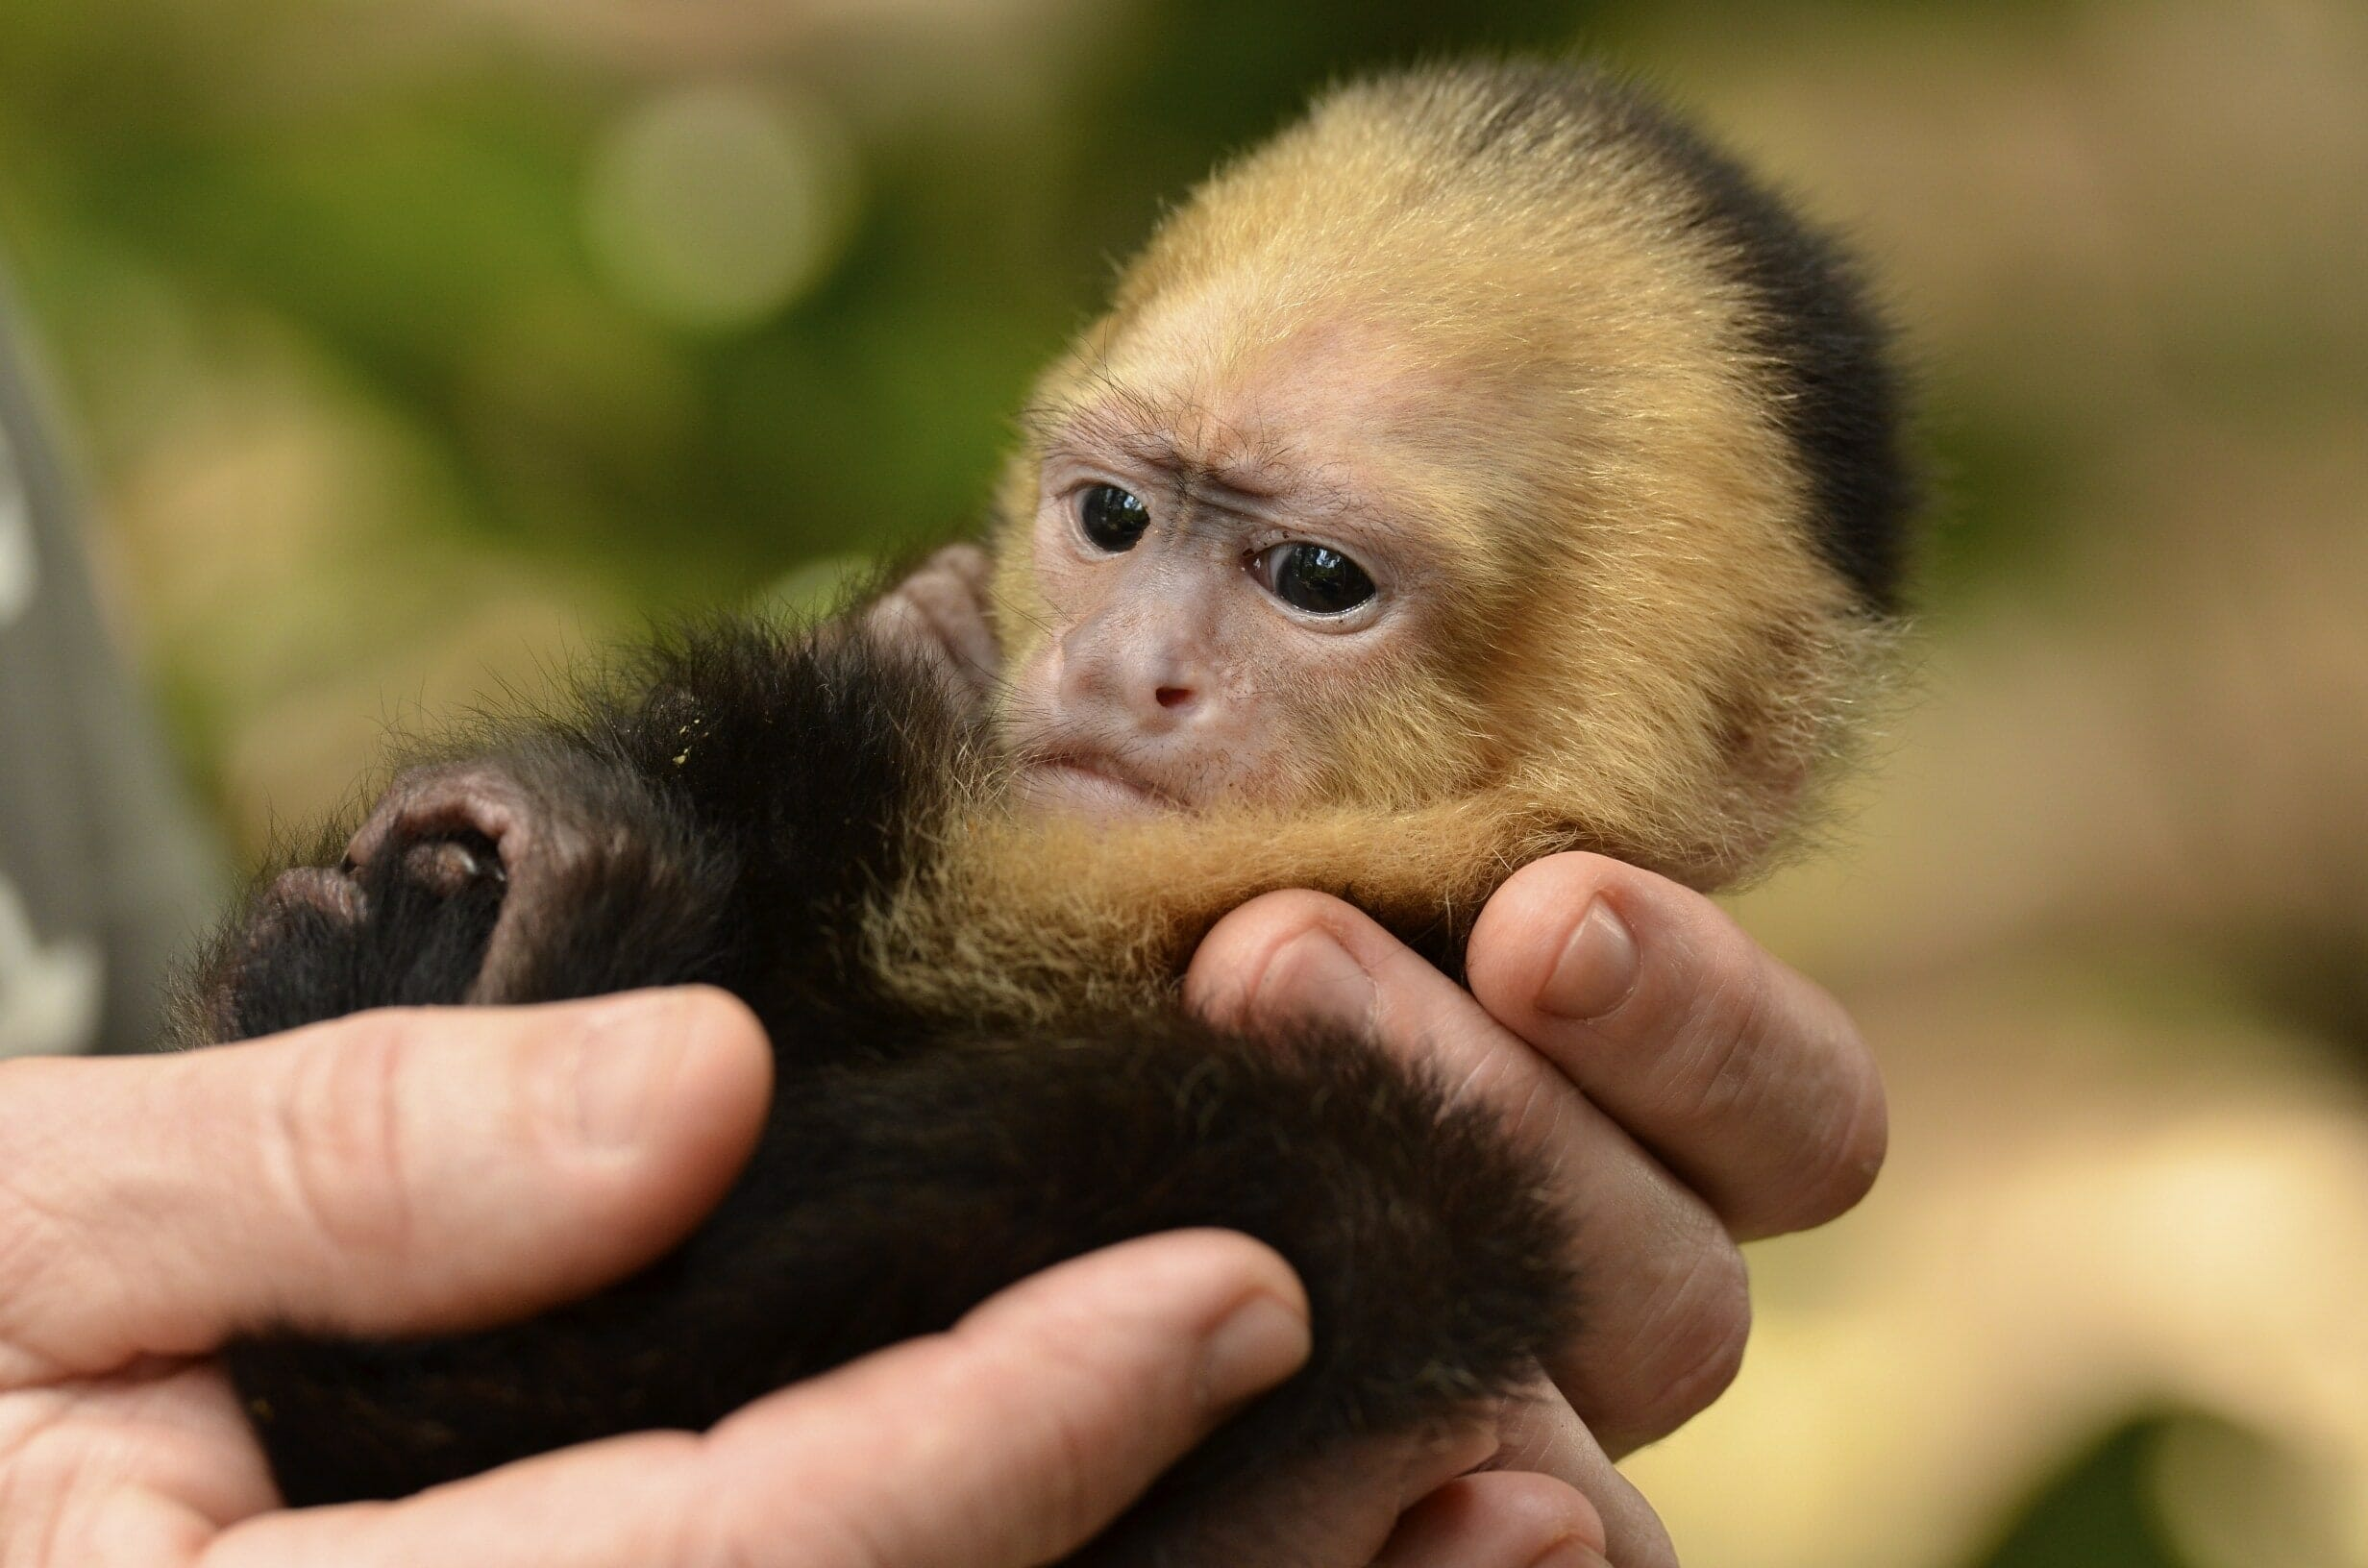 Buy a capuchin monkey online dating 7